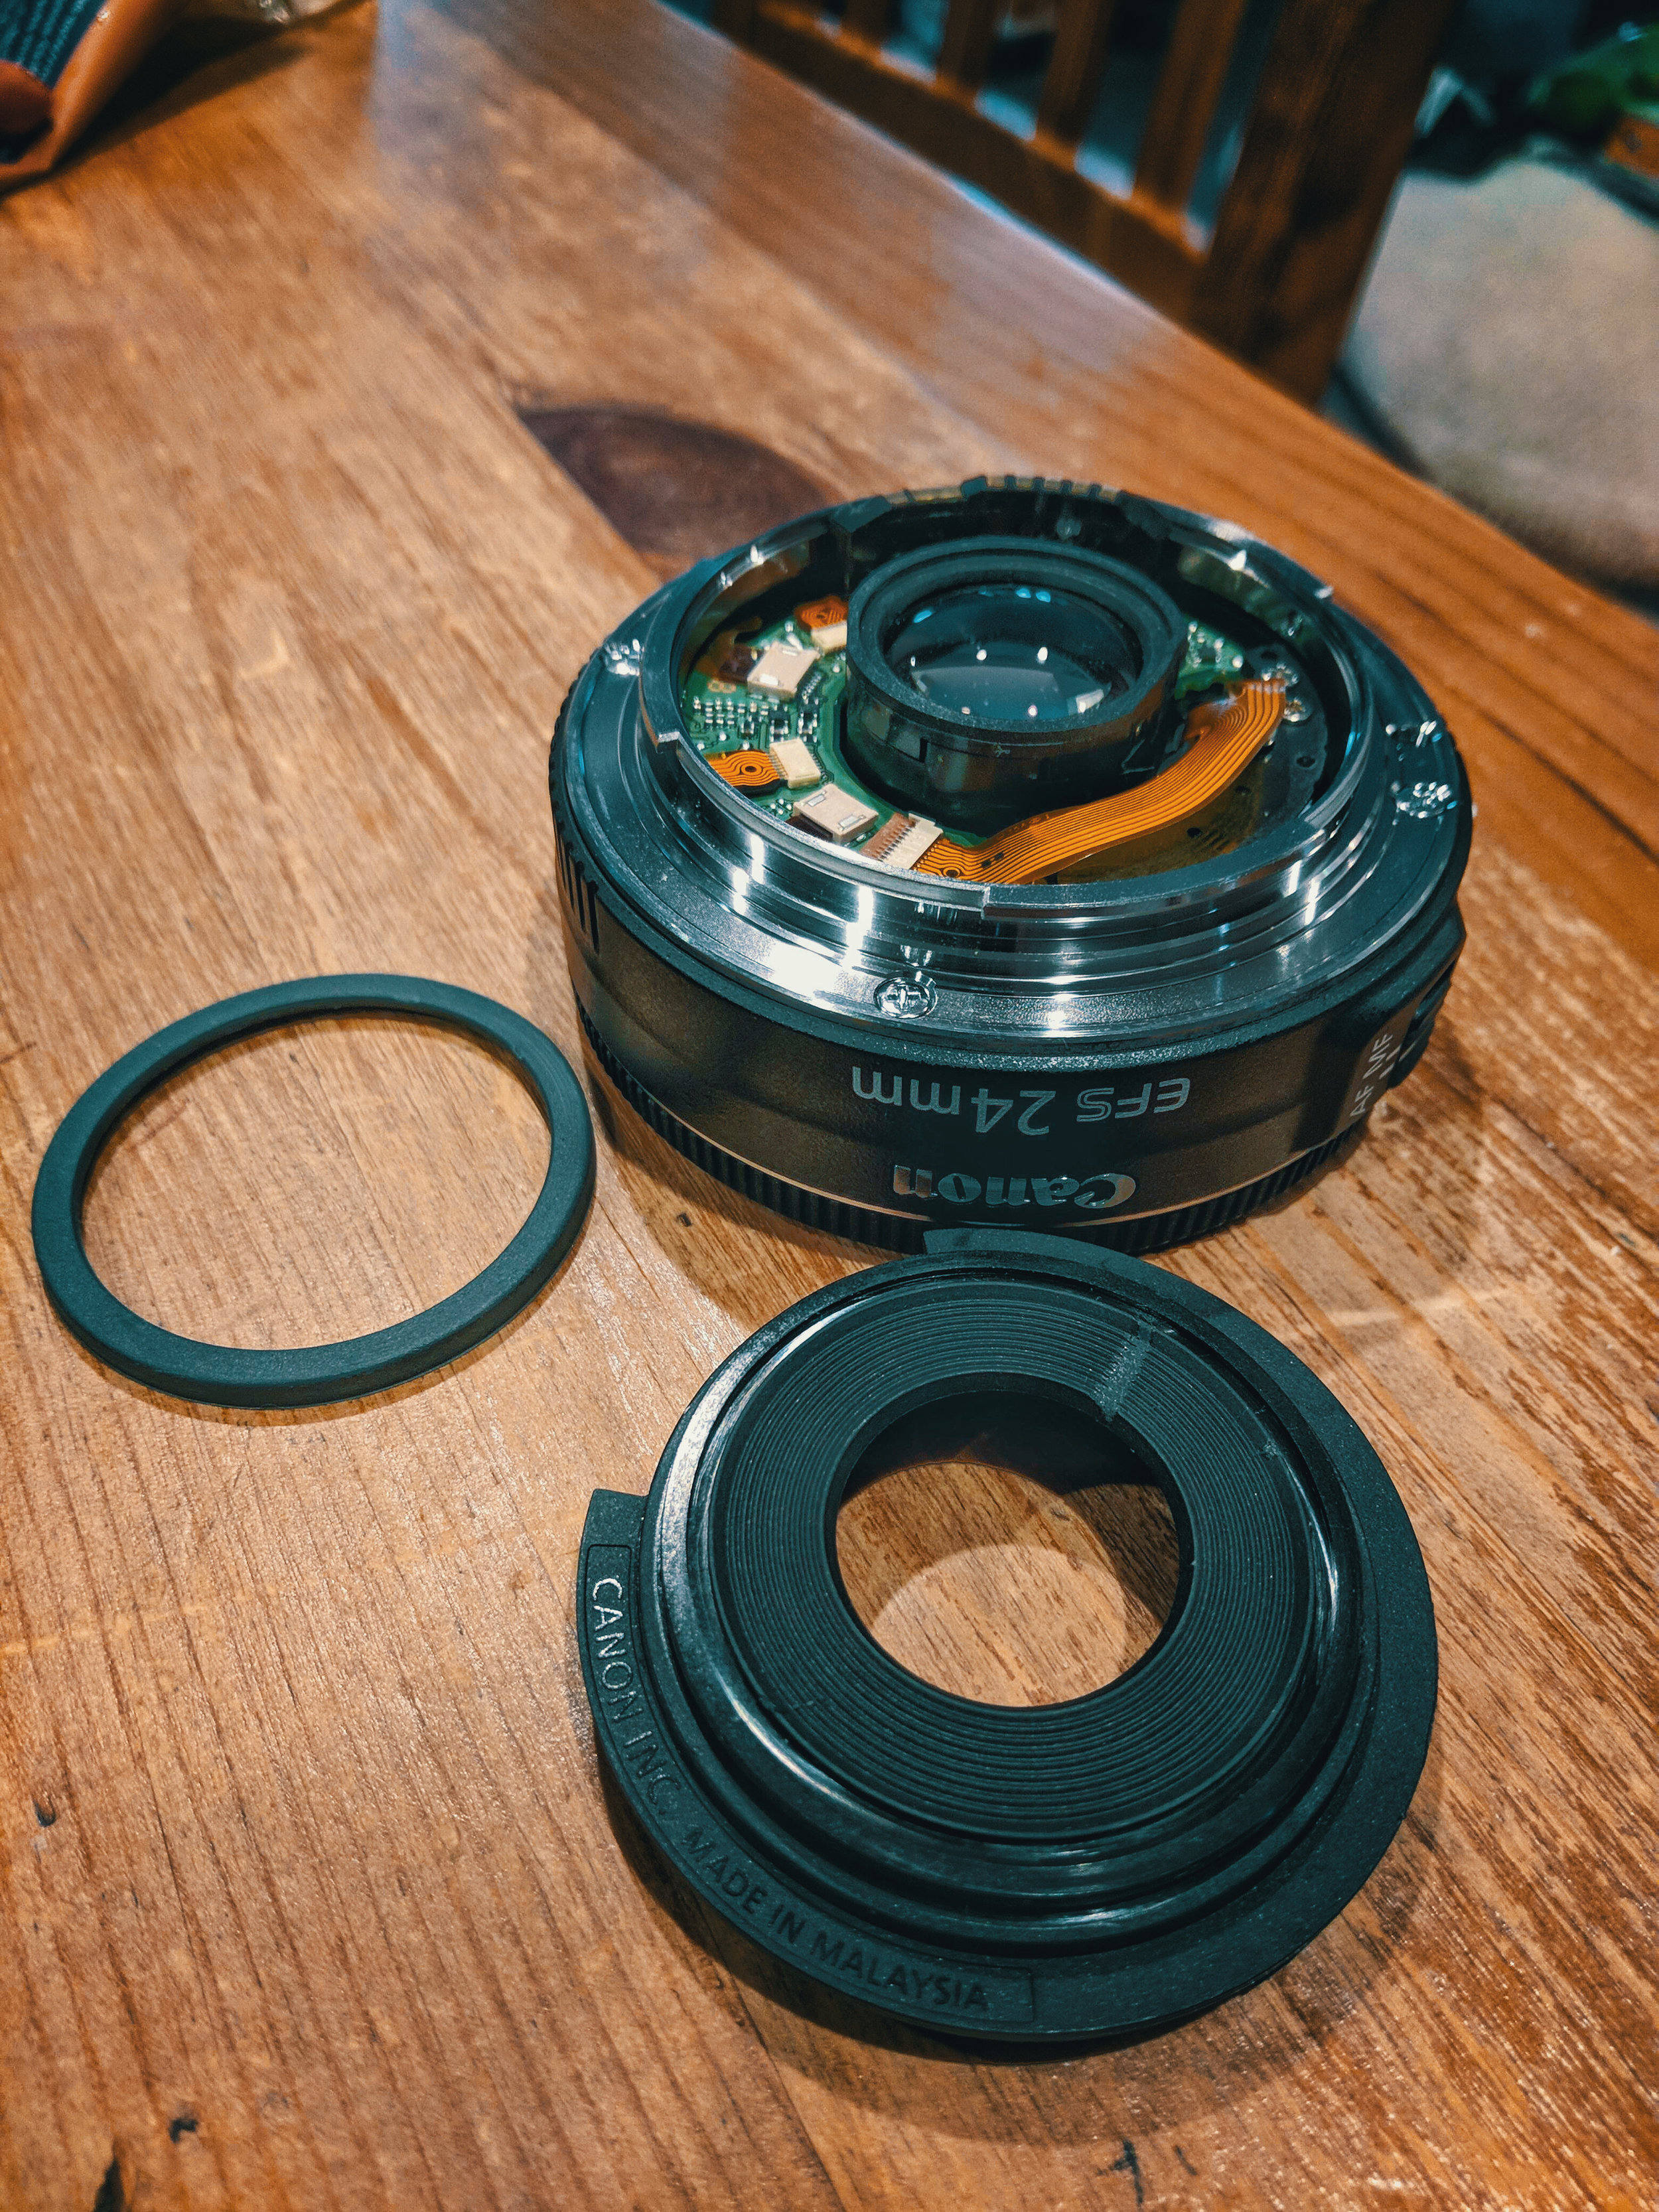 The Canon 24mm 2.8 Pancake Lens post flange removal